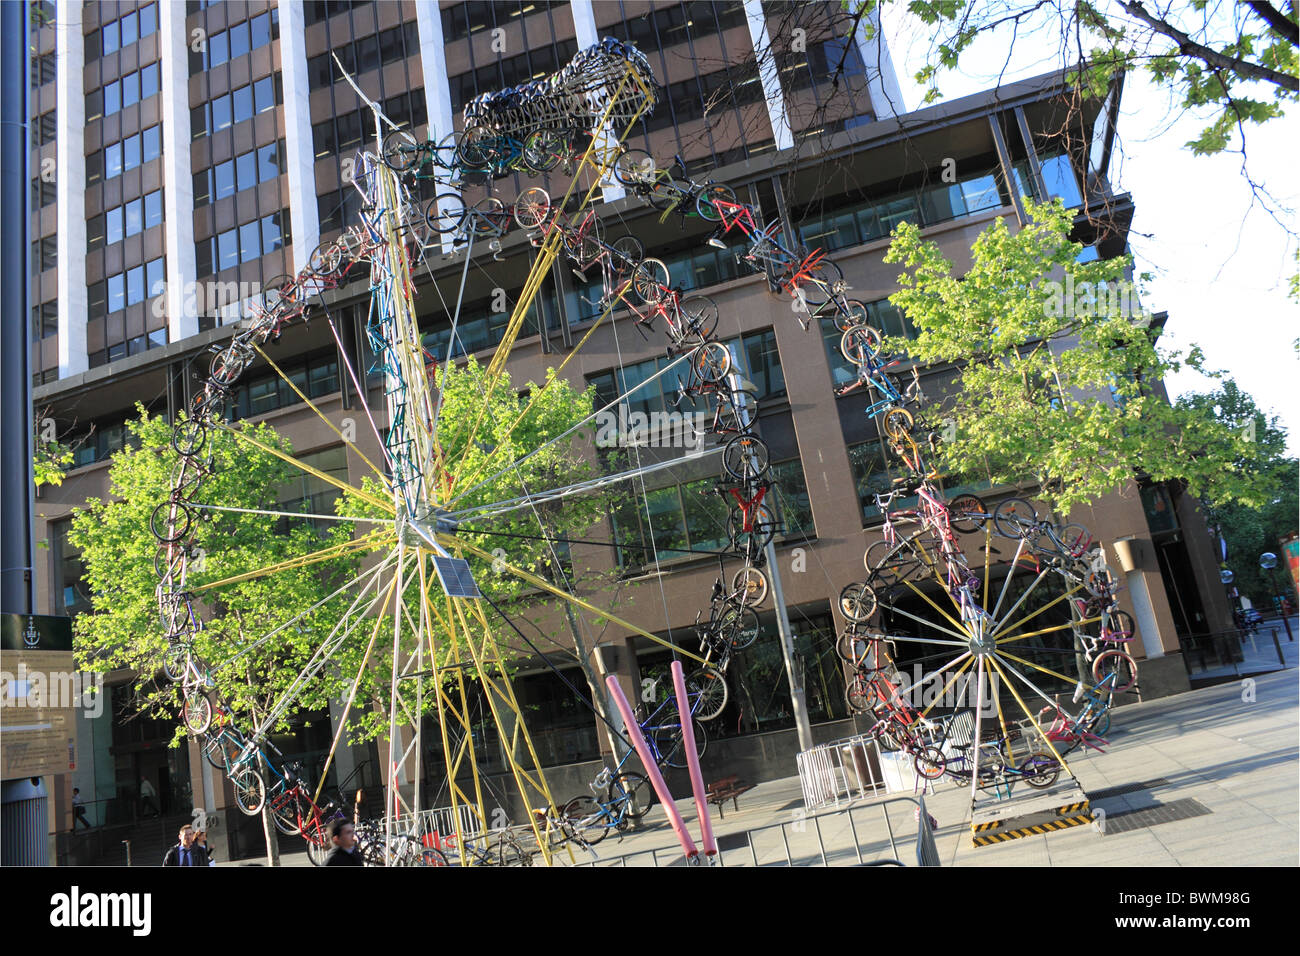 The Bike Bike giant penny farthing sculpture made from recycled bicycles, Sydney, New South Wales, NSW, Australia, - Stock Image